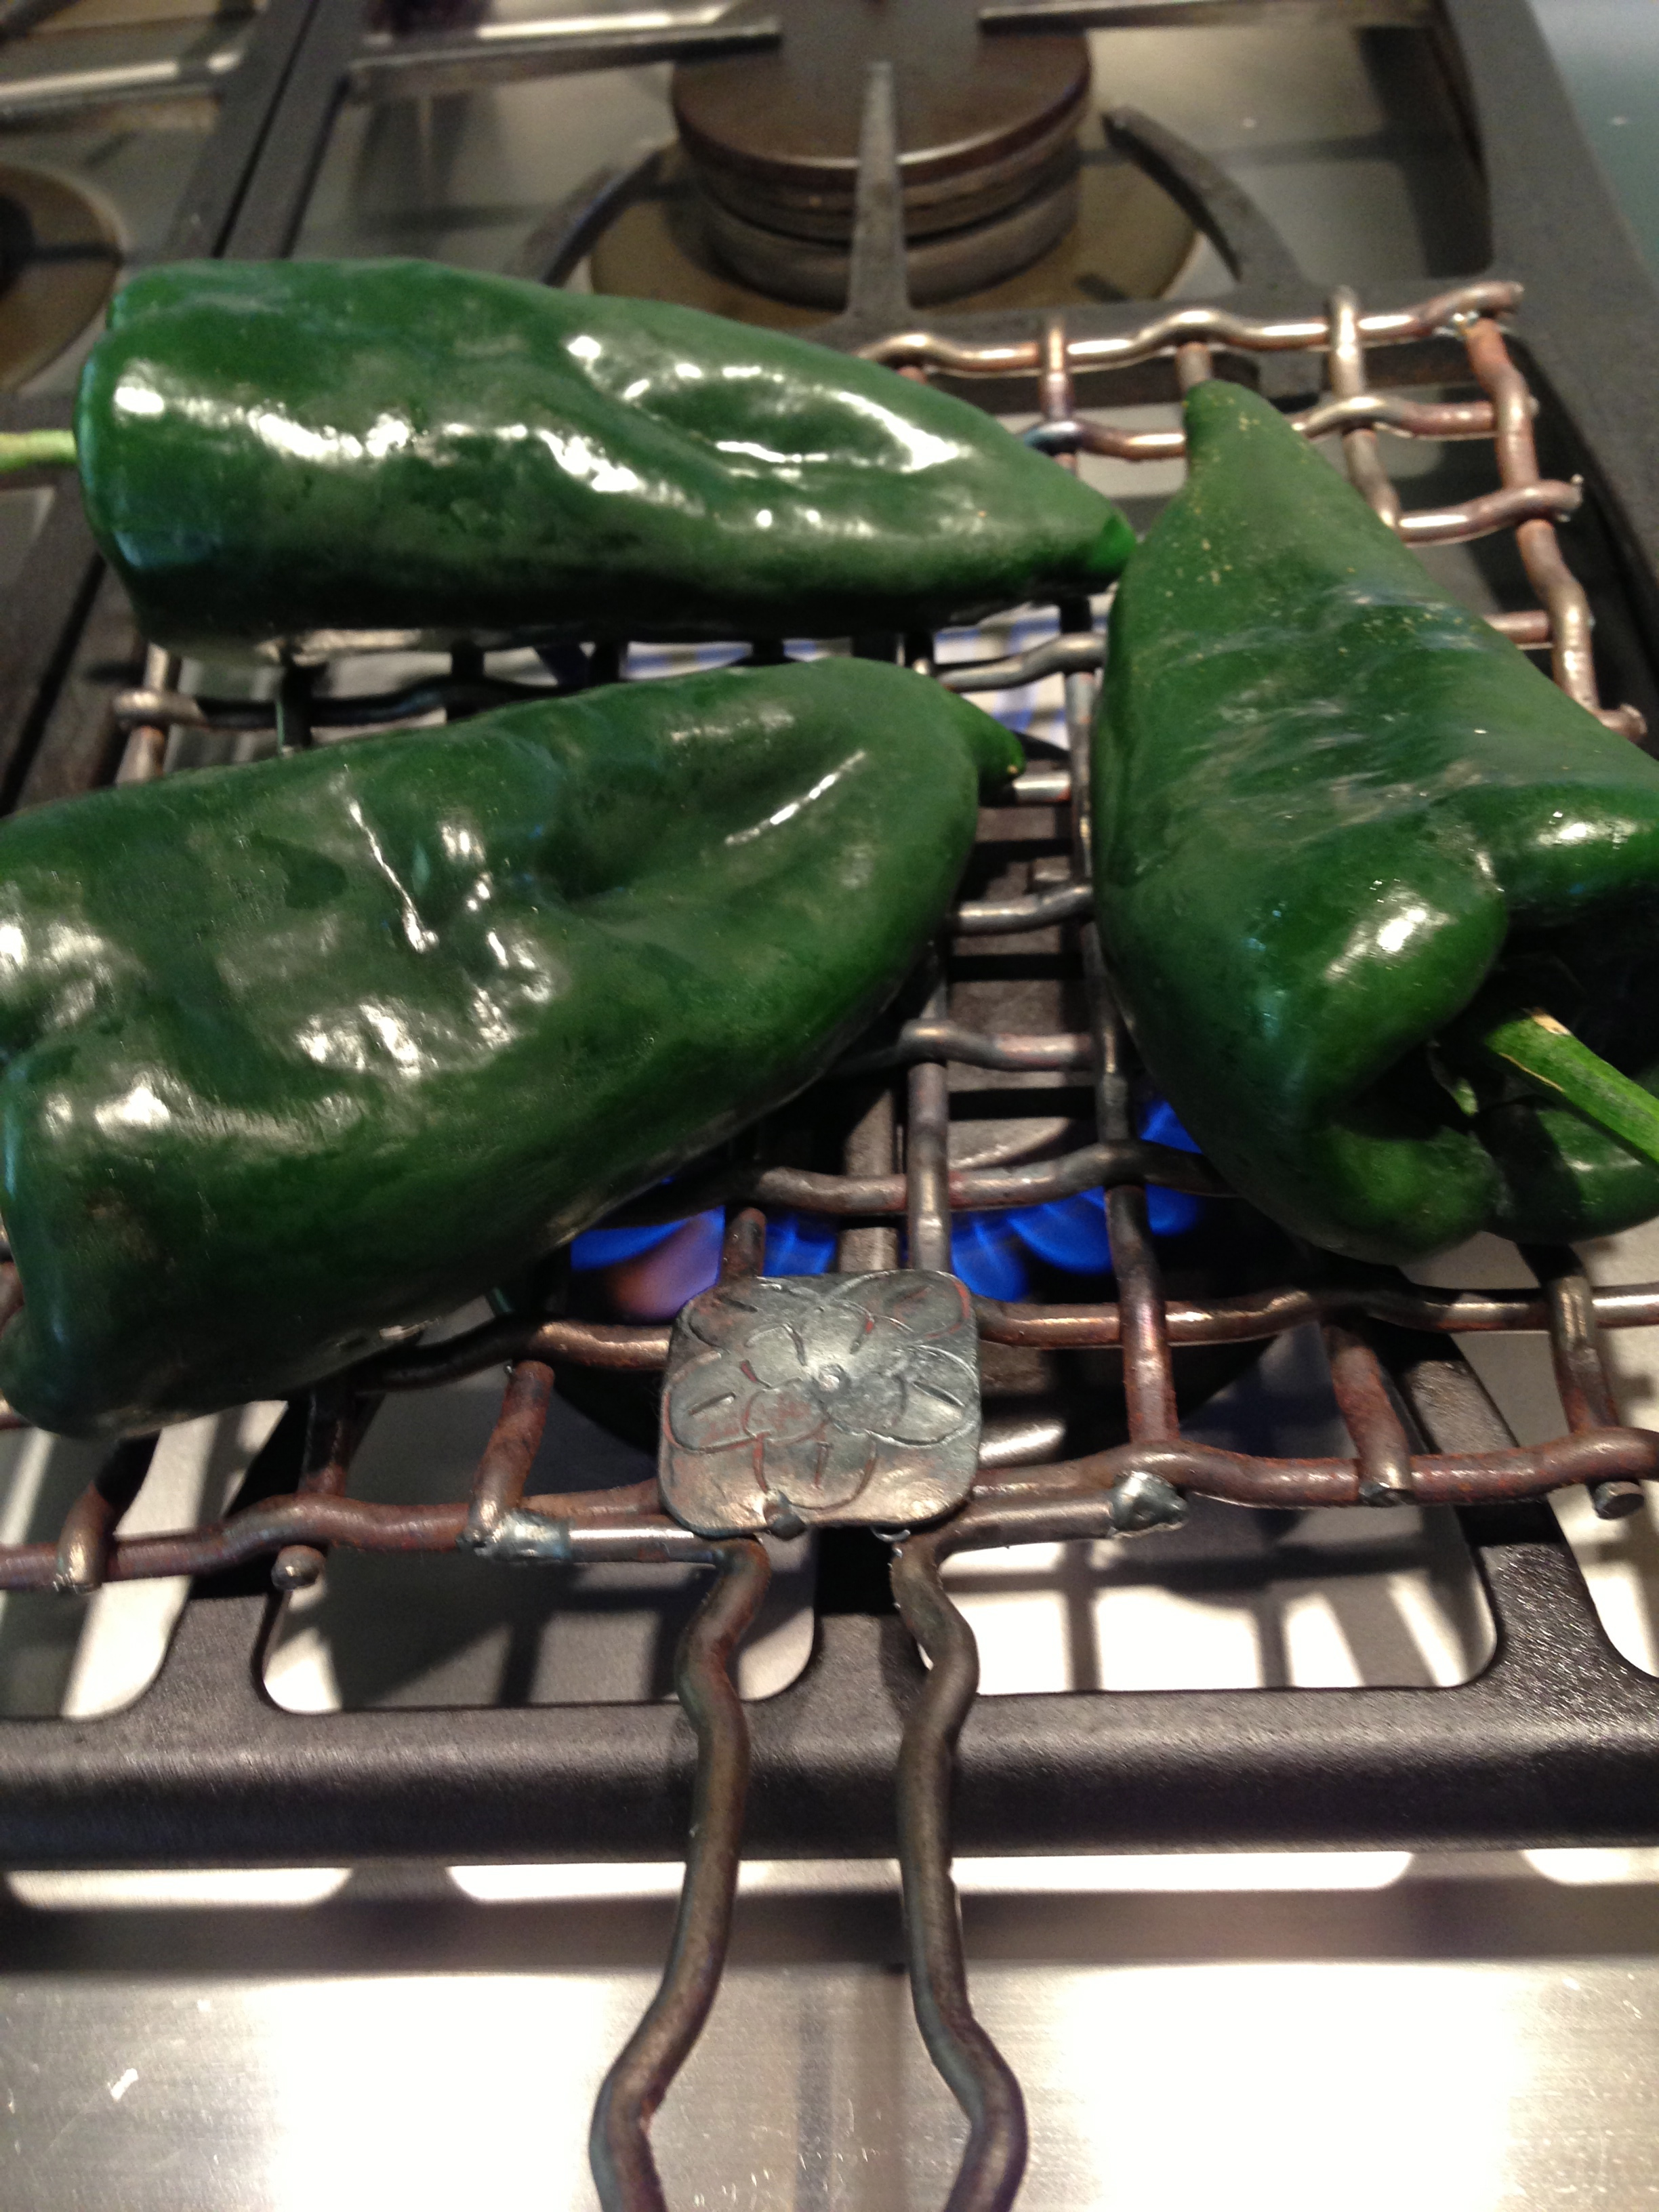 Chiles roasting on my uber-cool iron roasting basket from Valerie Rice.